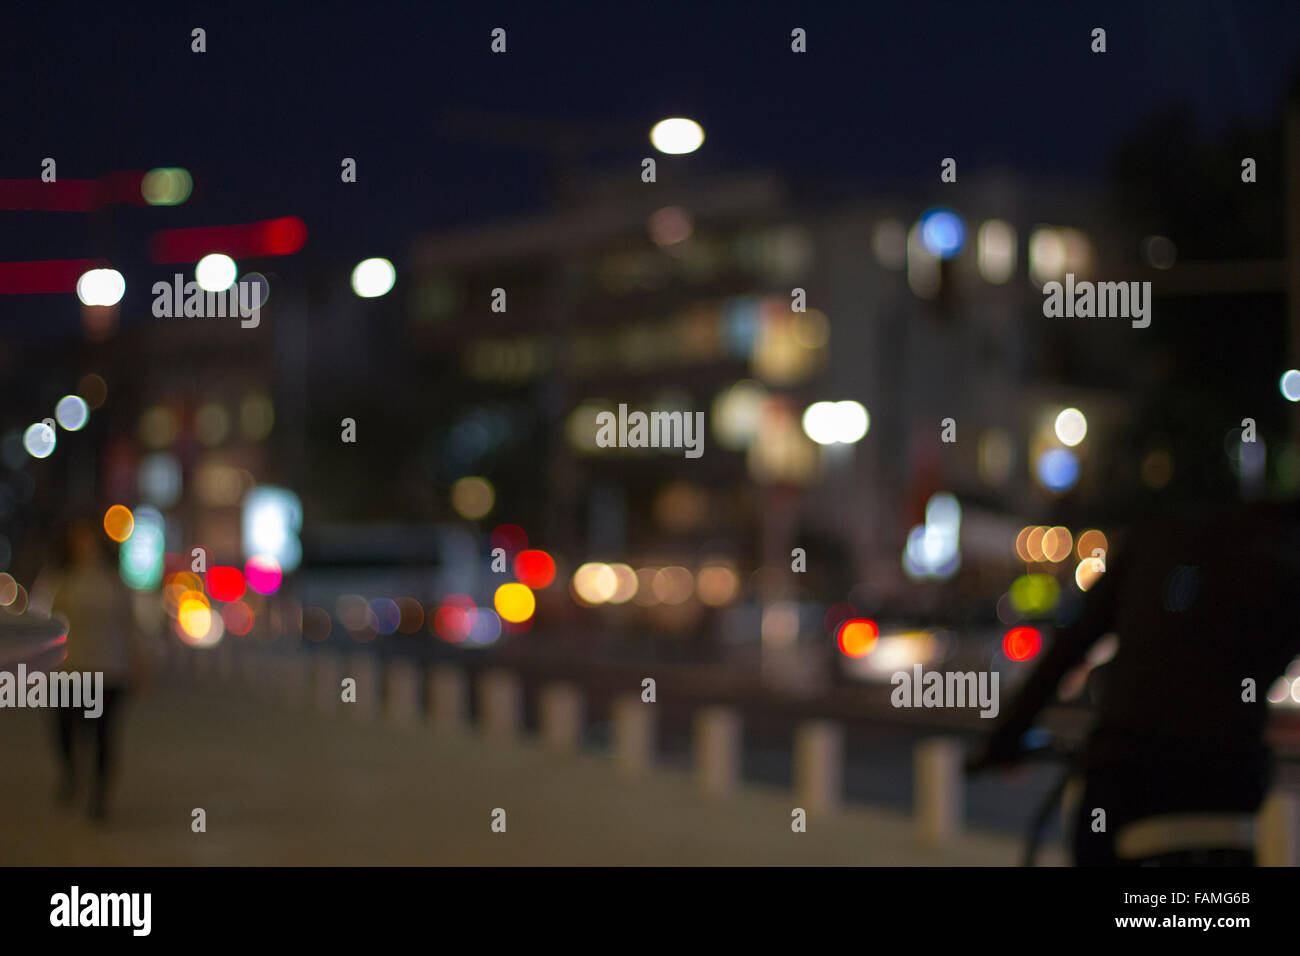 Defocused urban abstract texture ,boke of city lights in the background with blurring lights for your design - Stock Image